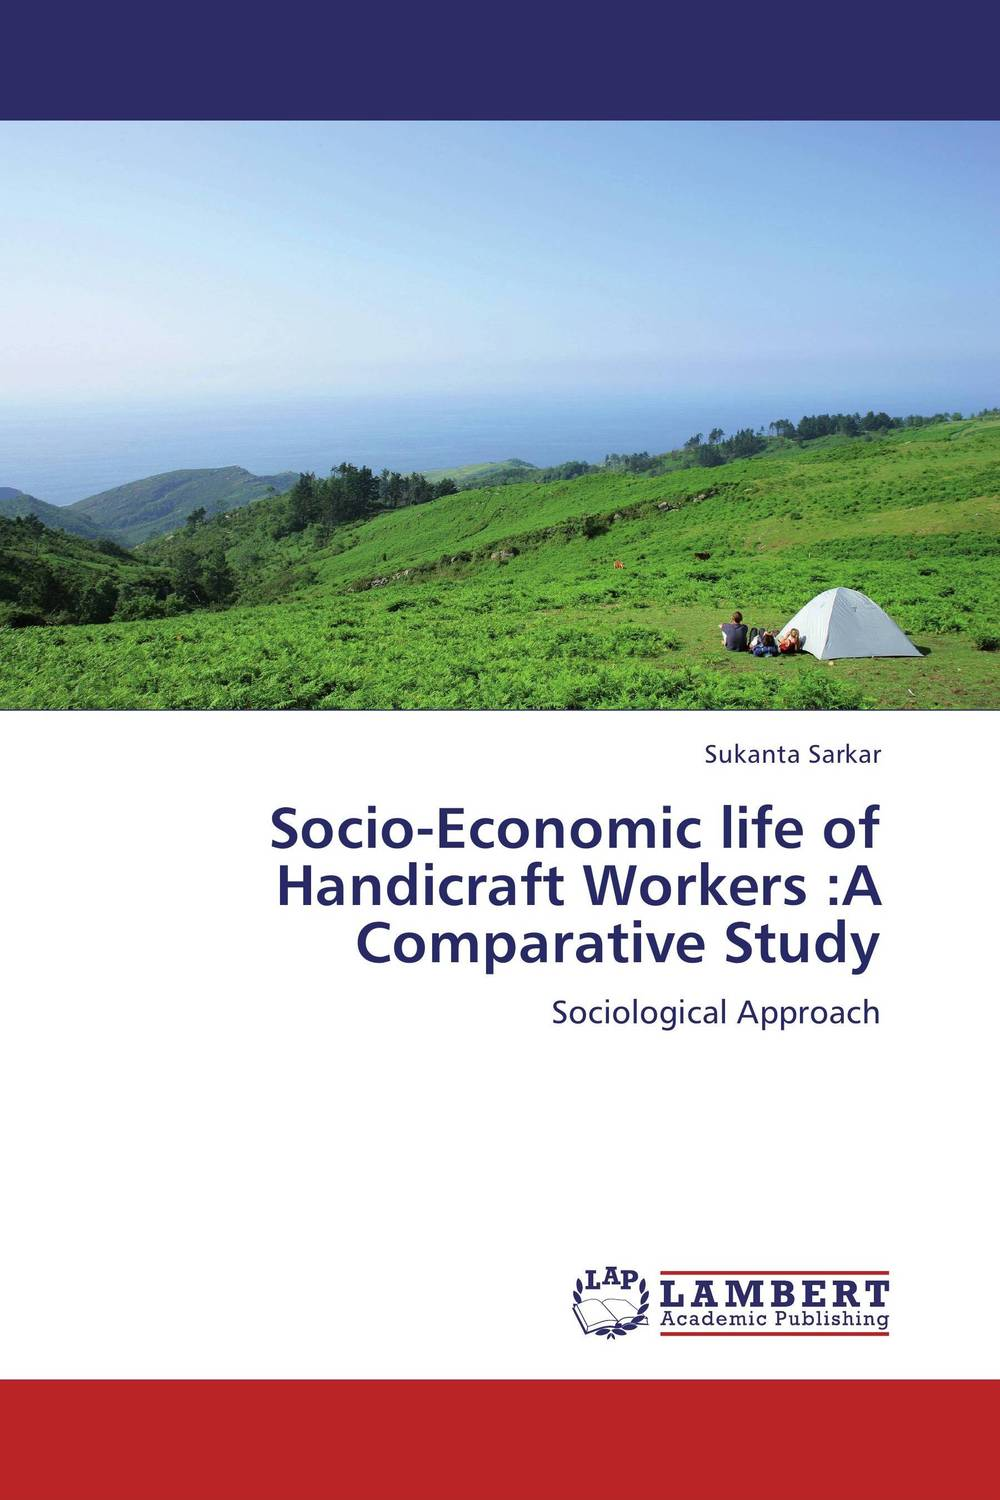 Socio-Economic life of Handicraft Workers :A Comparative Study gender and socio economic wellbeing of older persons in nigeria